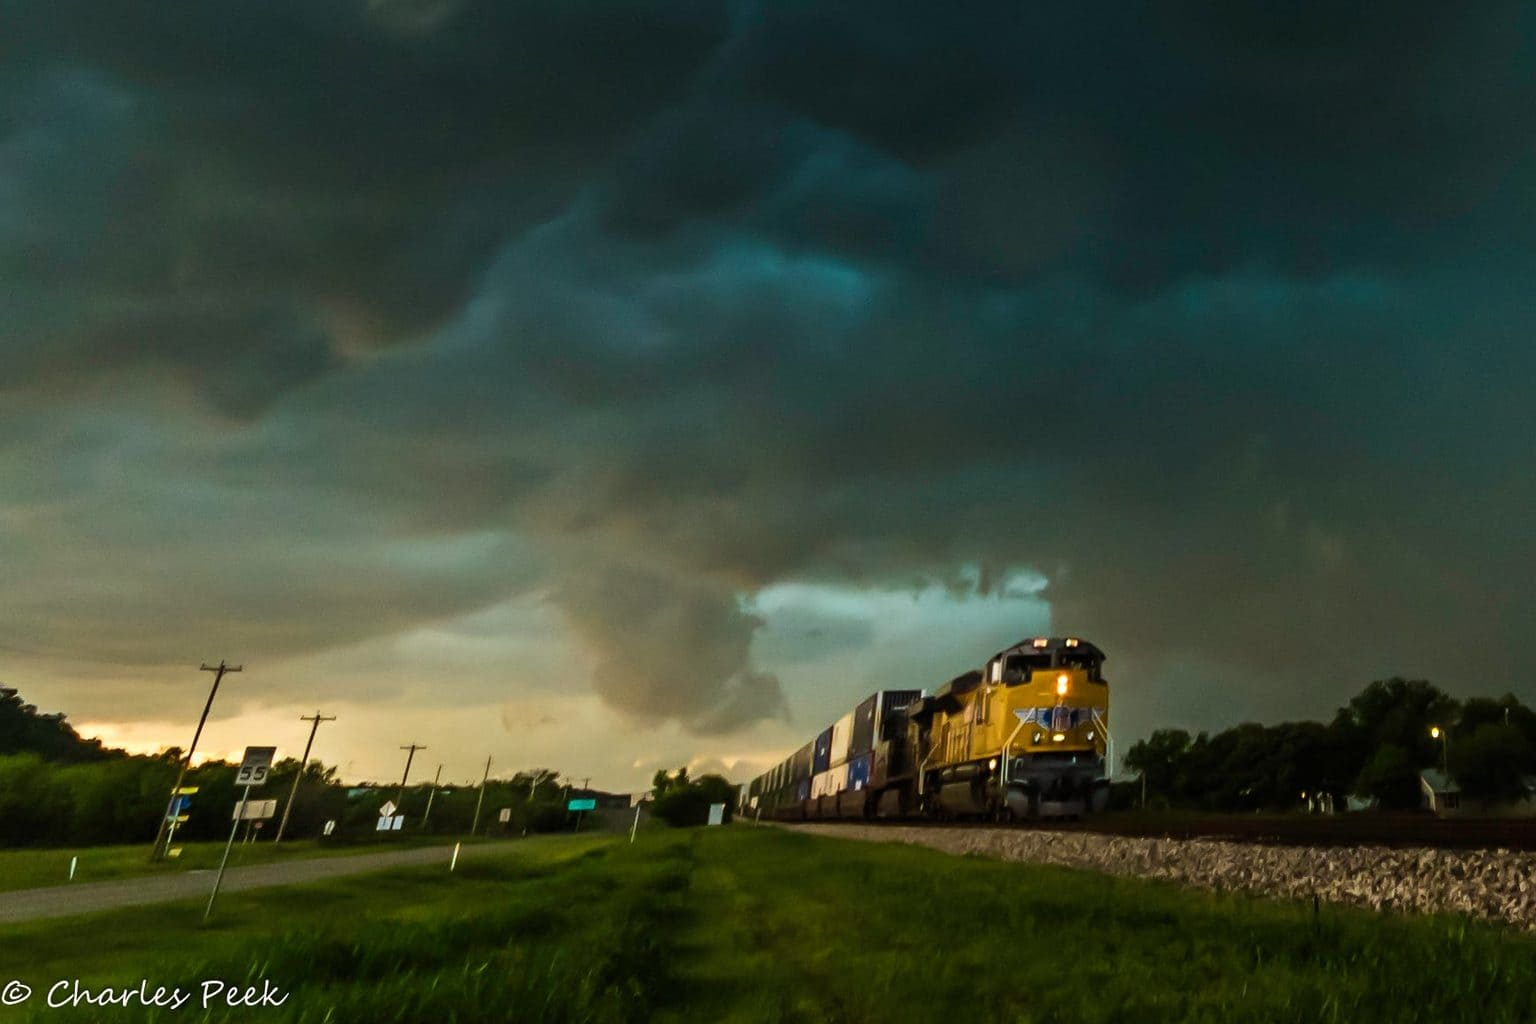 I had to stop and get a picture of this train as we were racing through Gordon,TX to stay ahead of a Tornado warned storm. With a Tornado just 3 miles behind us I didn't have time to get a good set up on this shot but got lucky and it turned out pretty good.